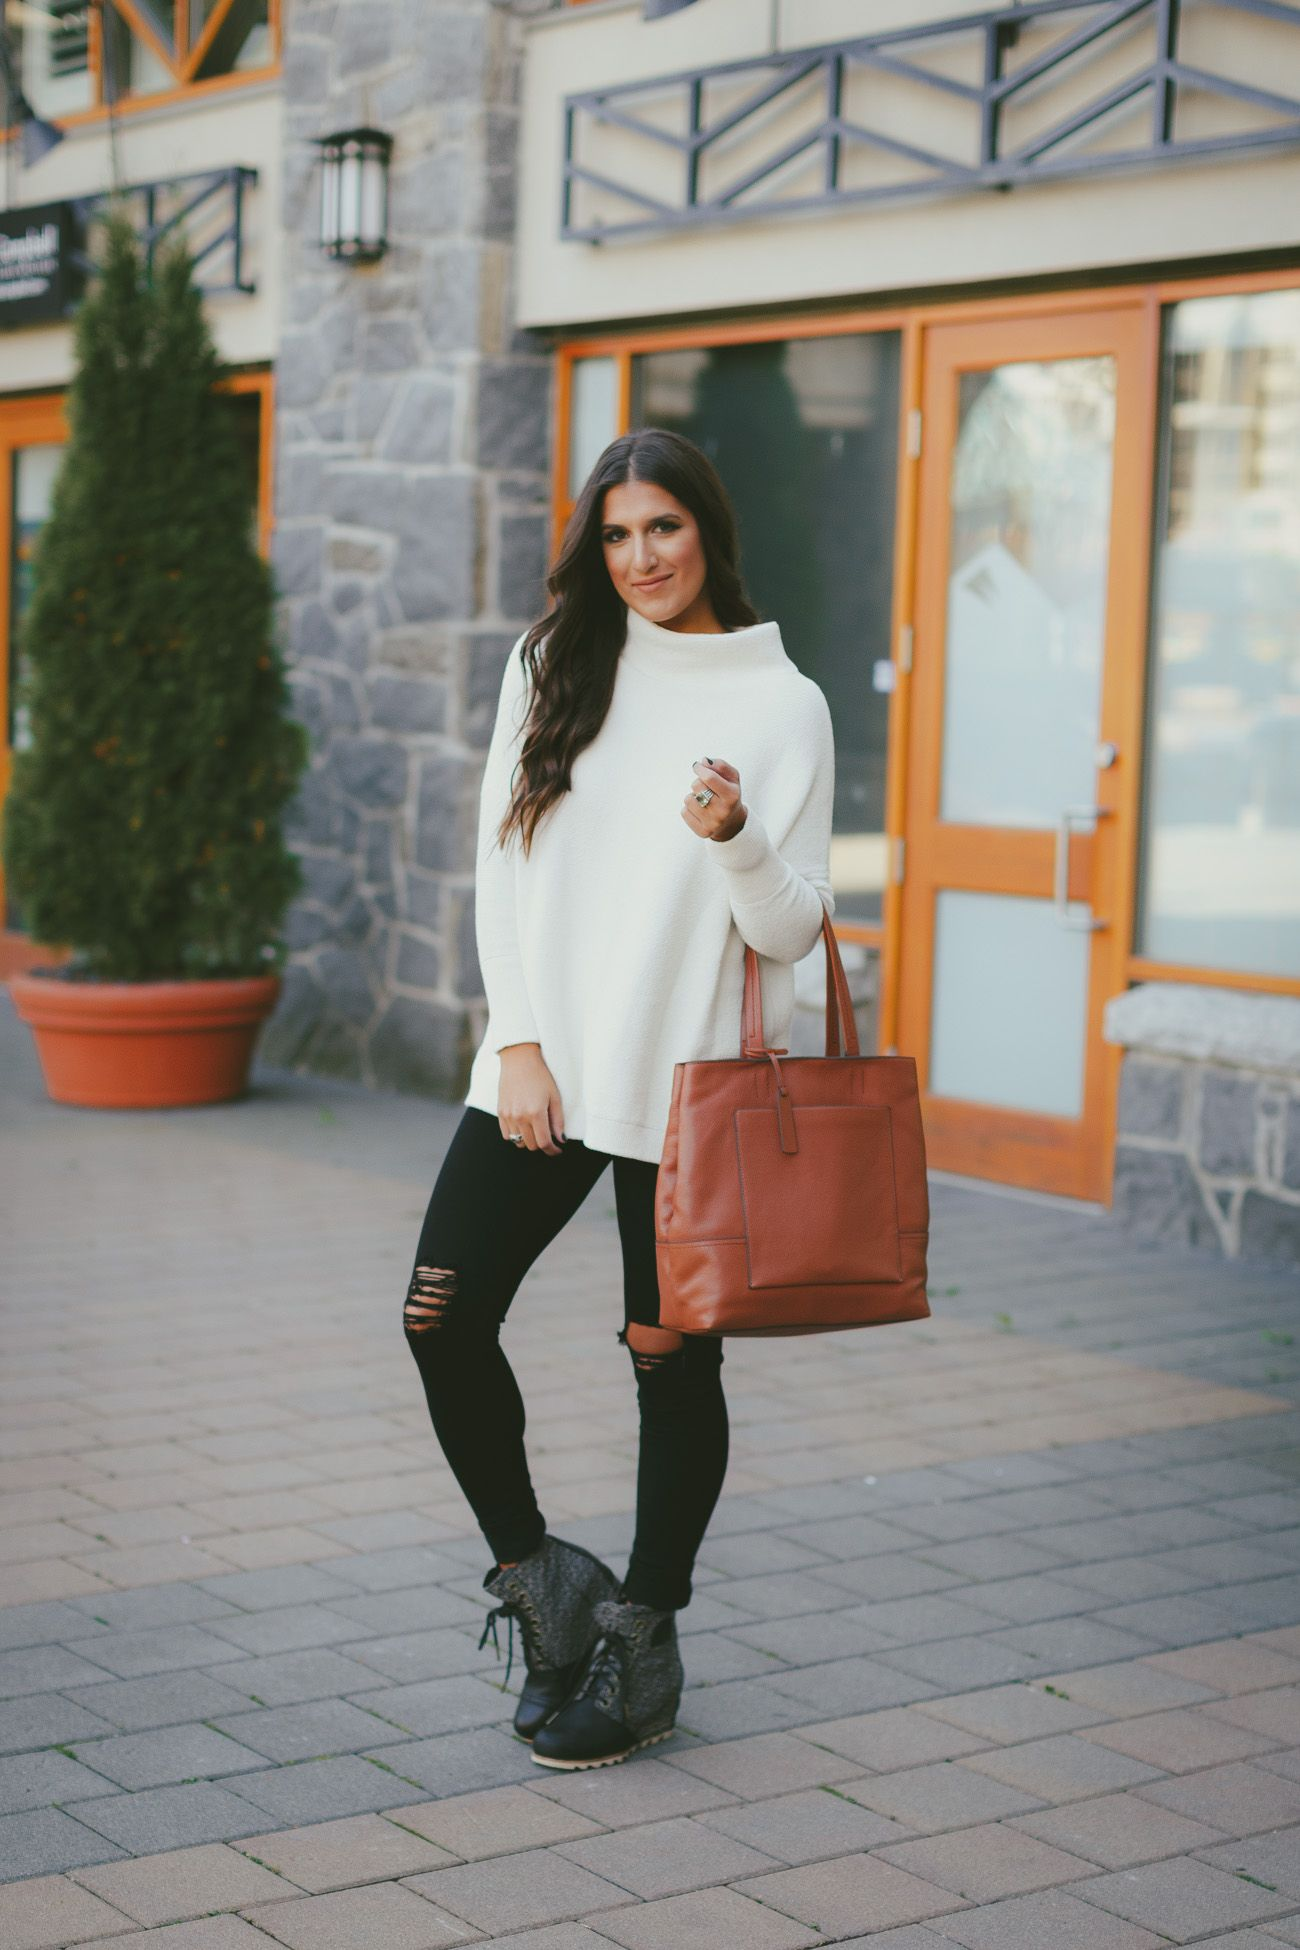 ad88d050551e Cozy Mountain Style | A Southern Drawl. White sweater+black ripped  jeans+black laced boots+brick red tote bag. Fall Outfit 2016